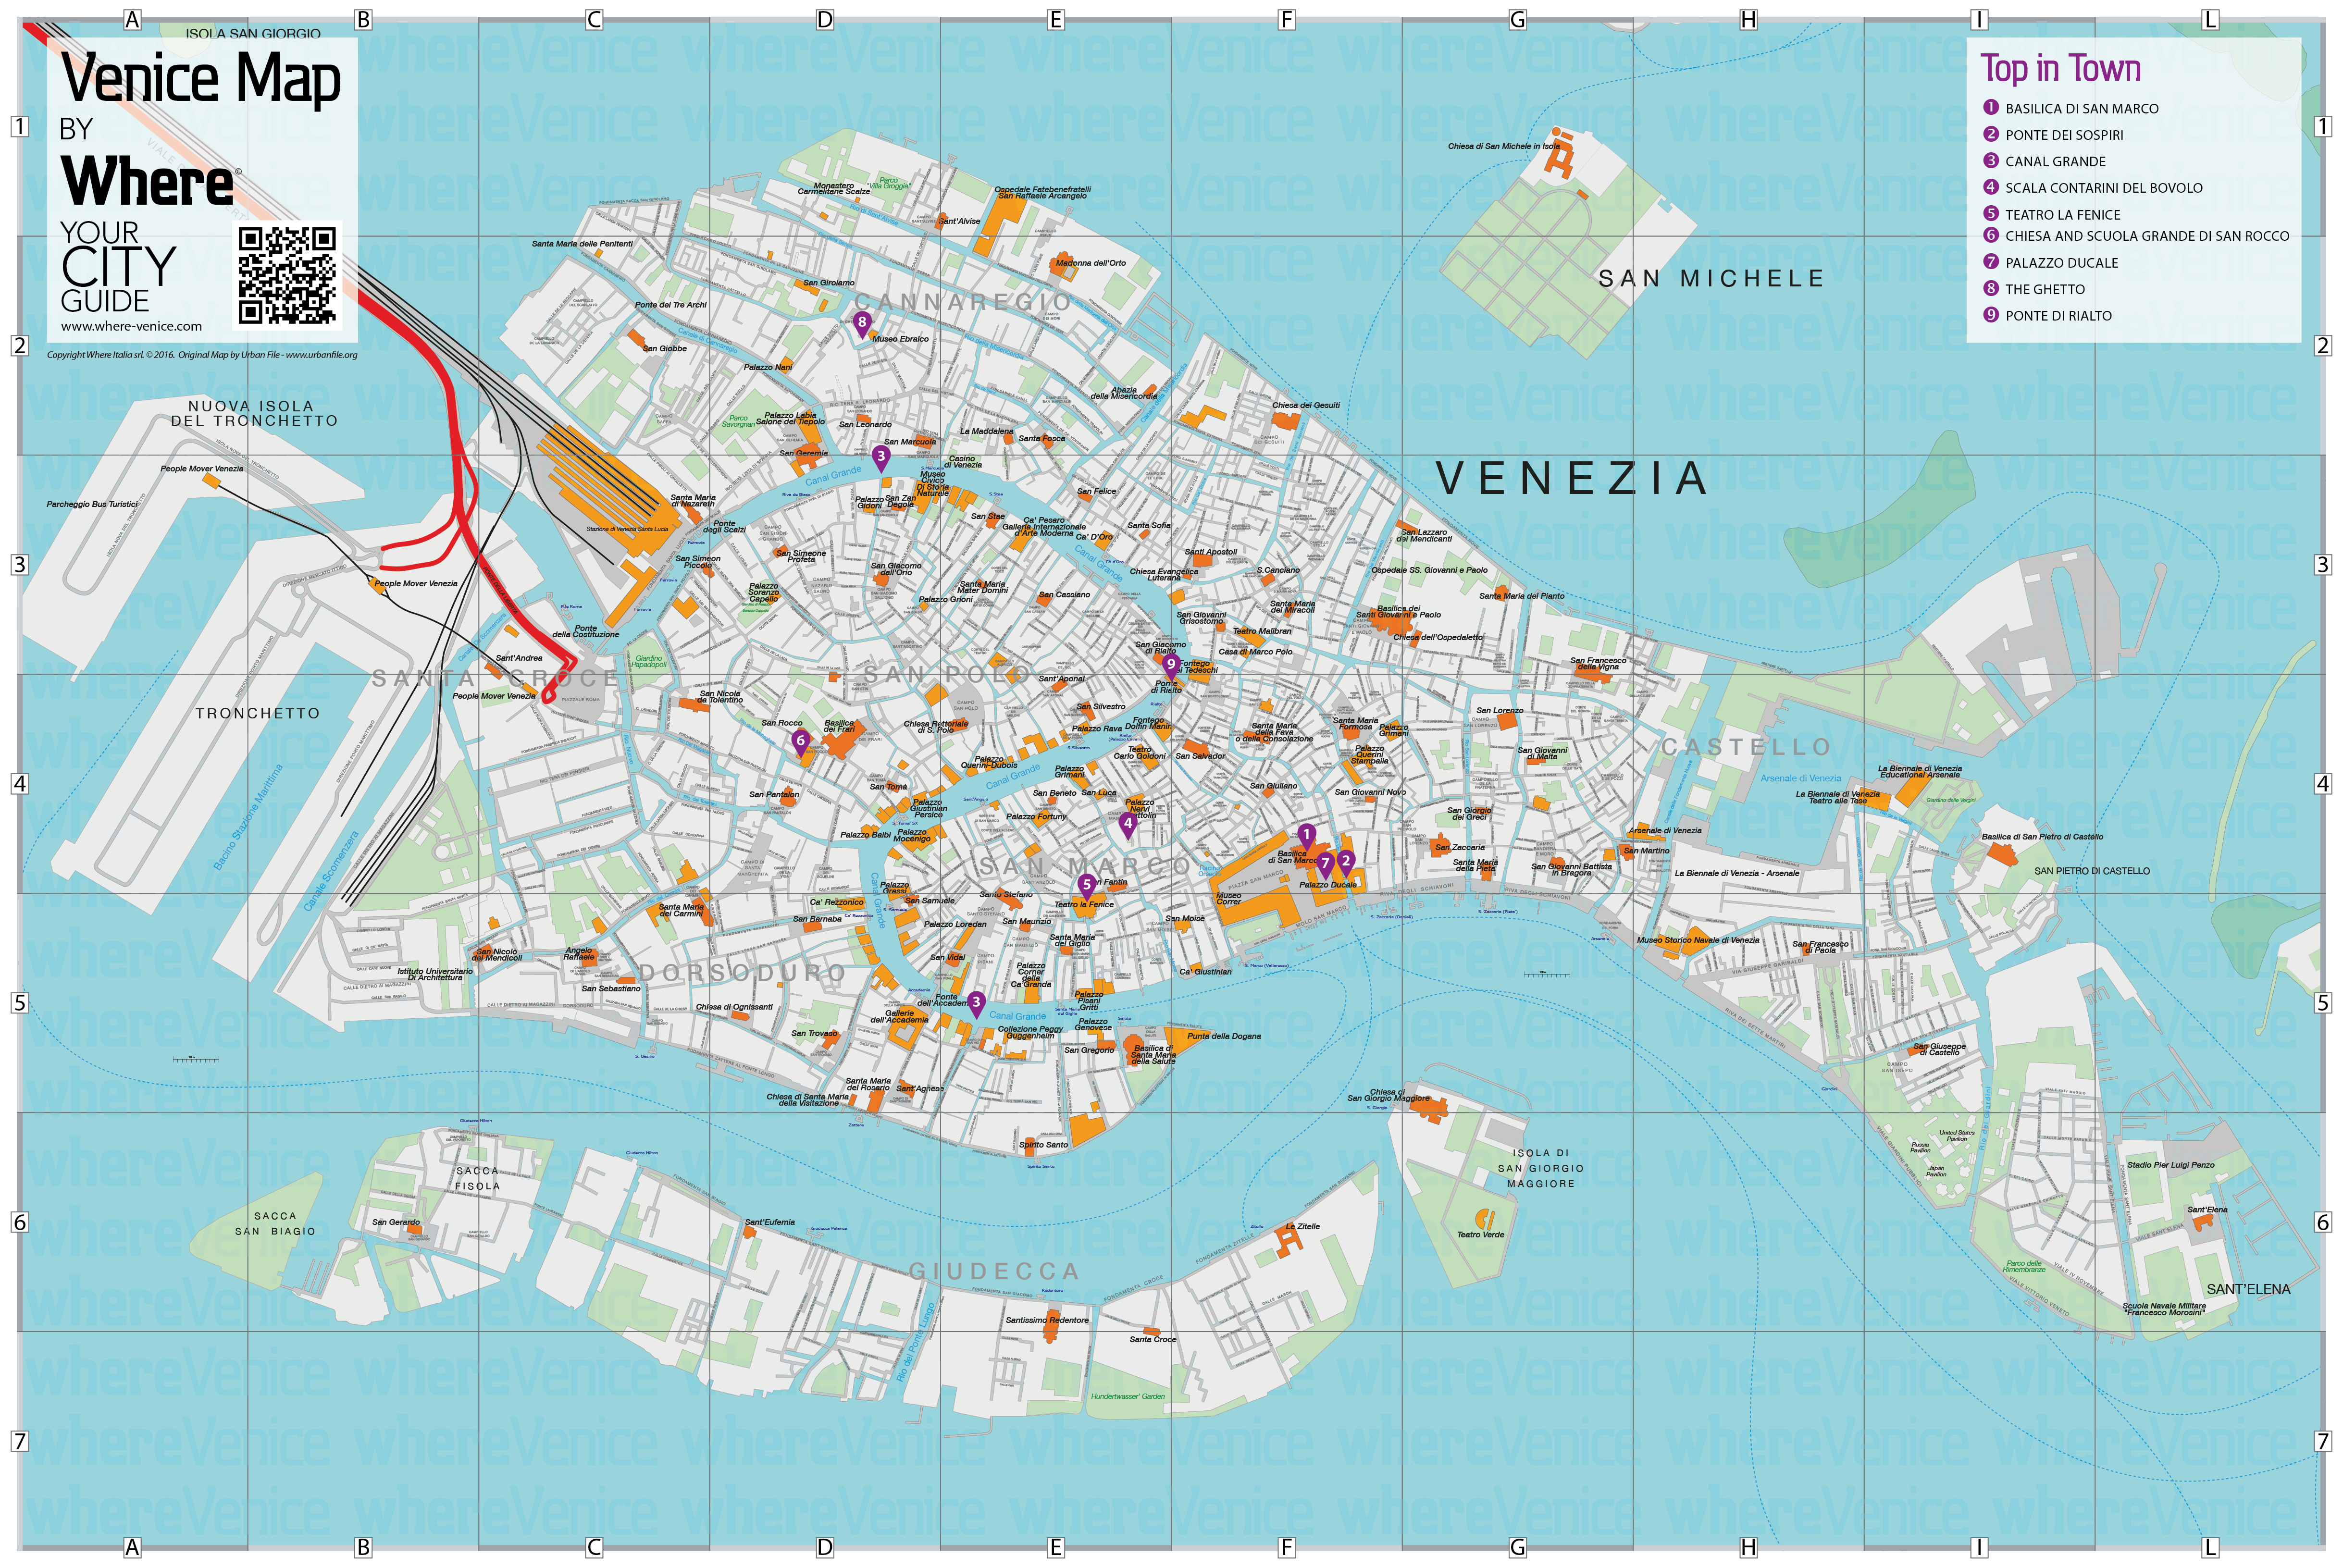 Venice City Map - Free Download In Printable Version | Where Venice - Venice Printable Tourist Map